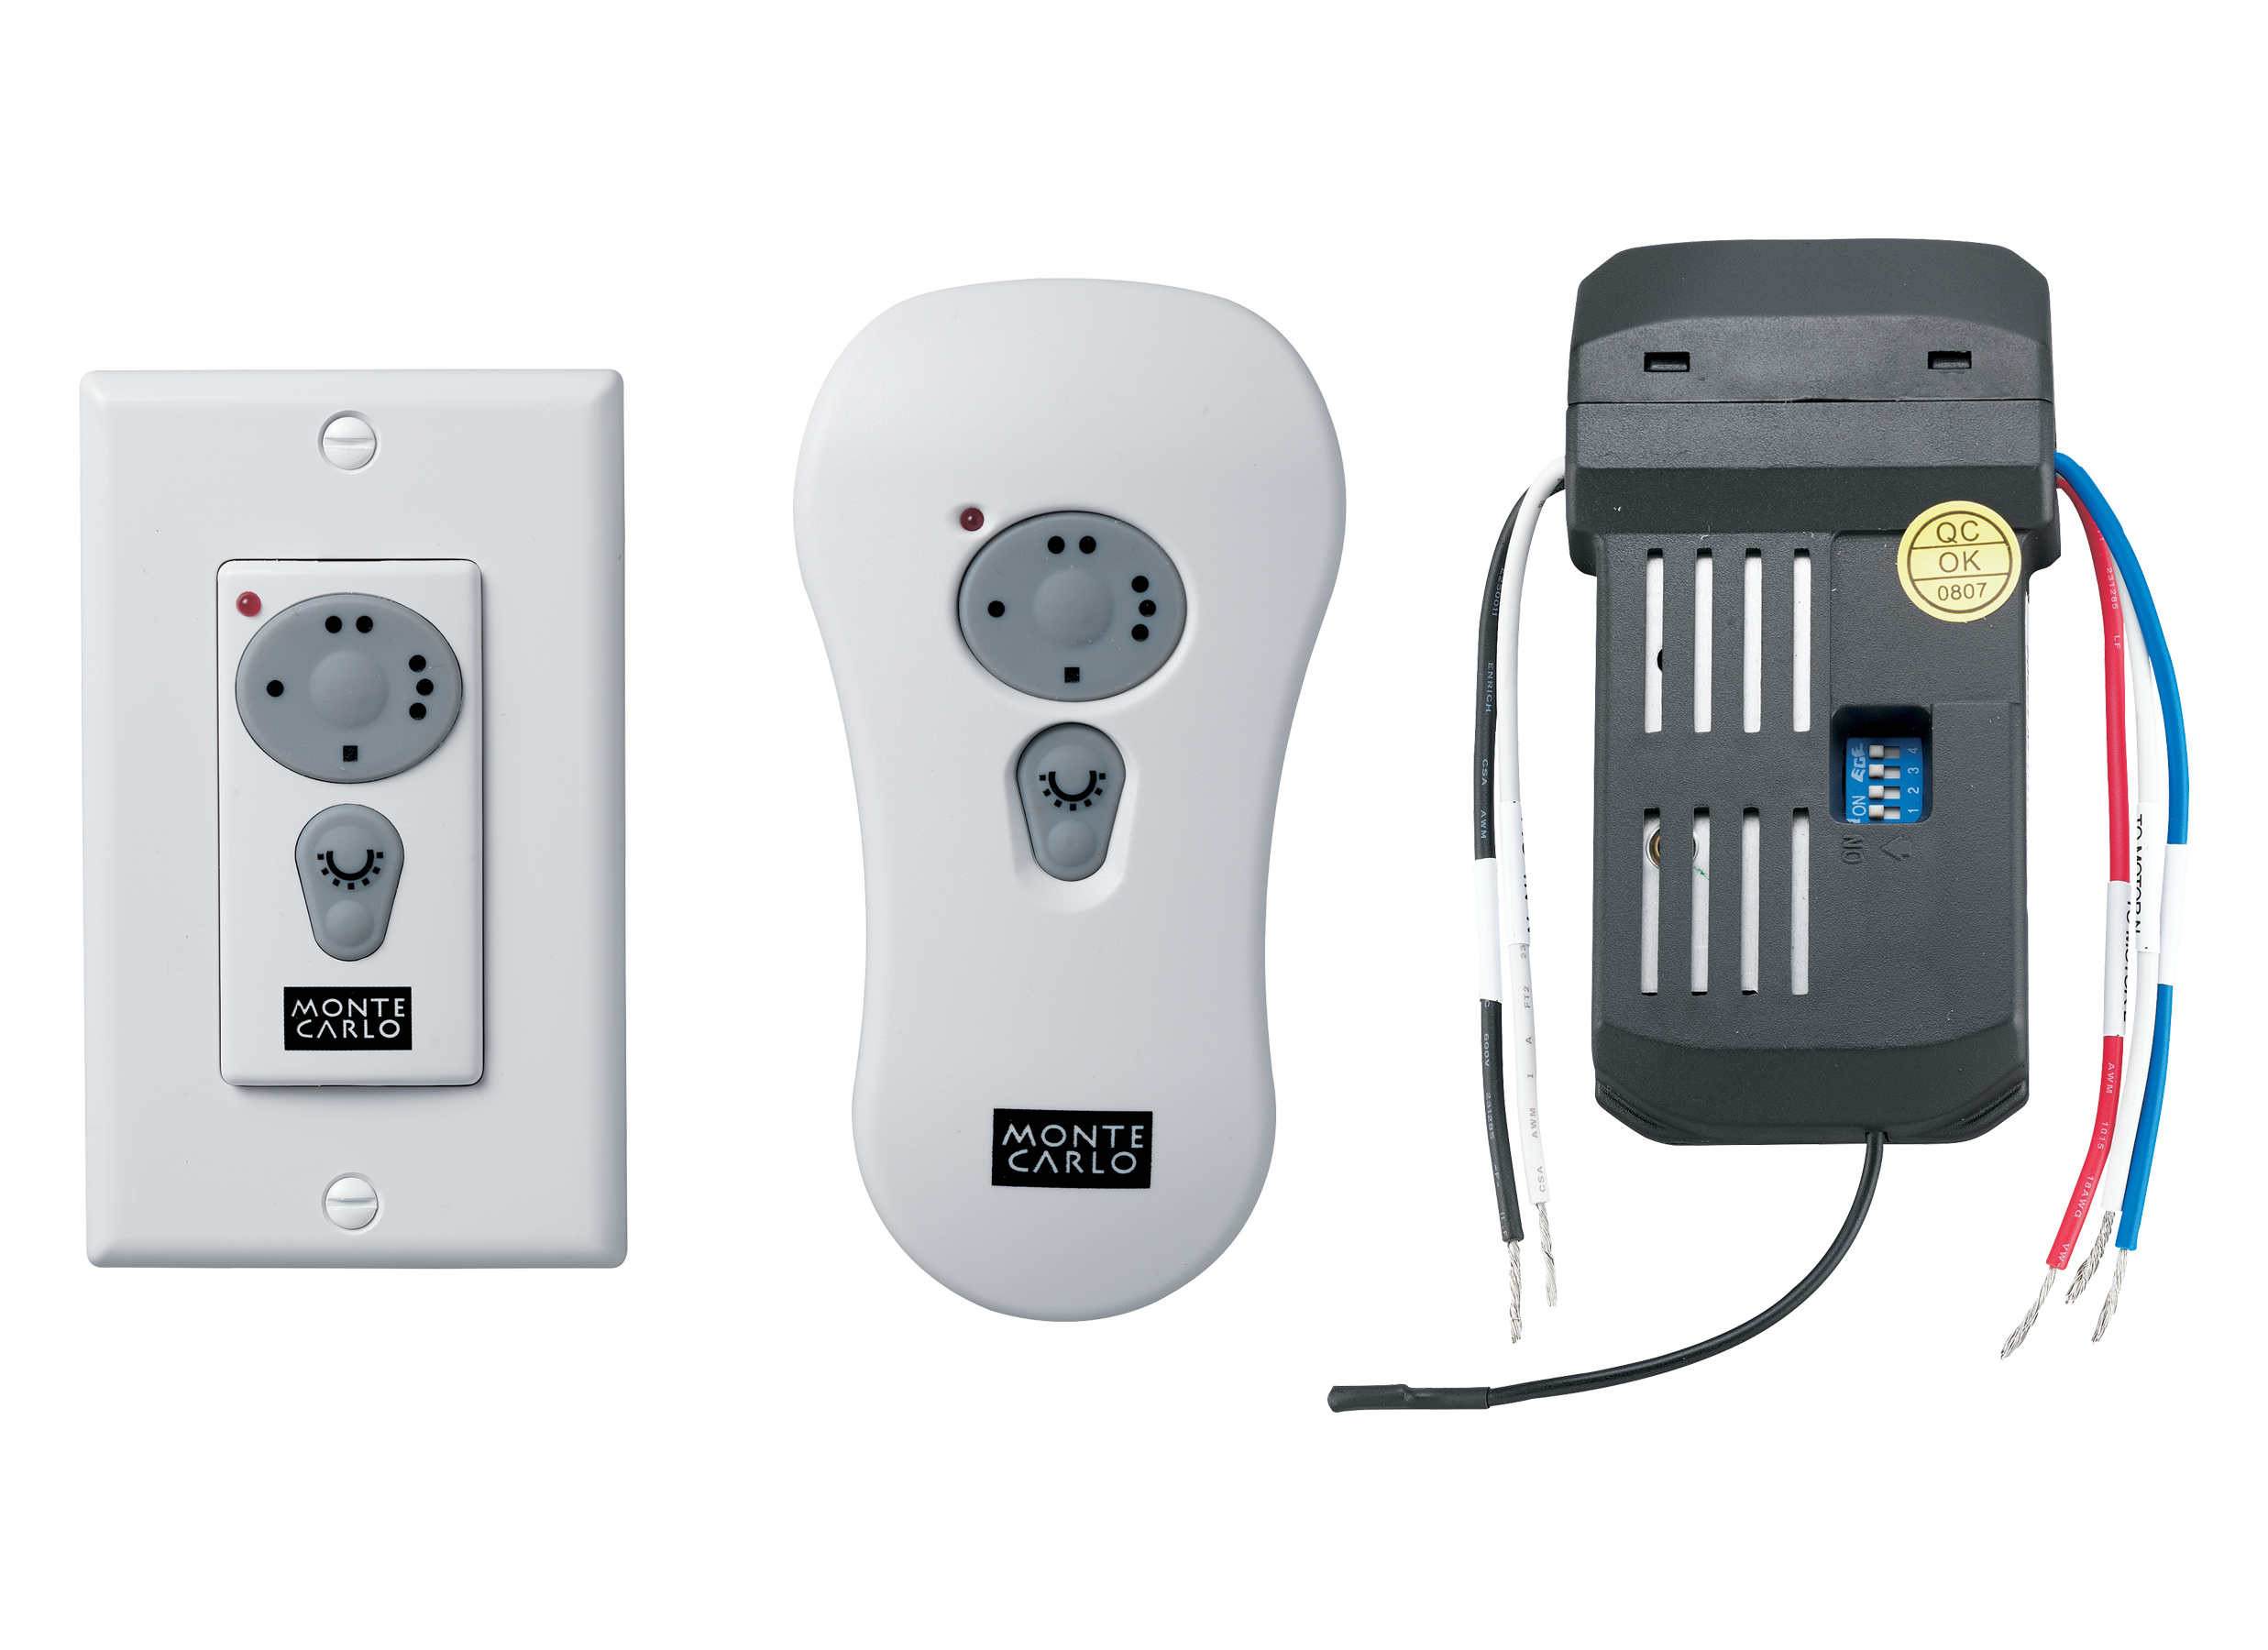 CK250 ck250,wall hand held remote control kit,white uc7067rc wiring diagram at alyssarenee.co